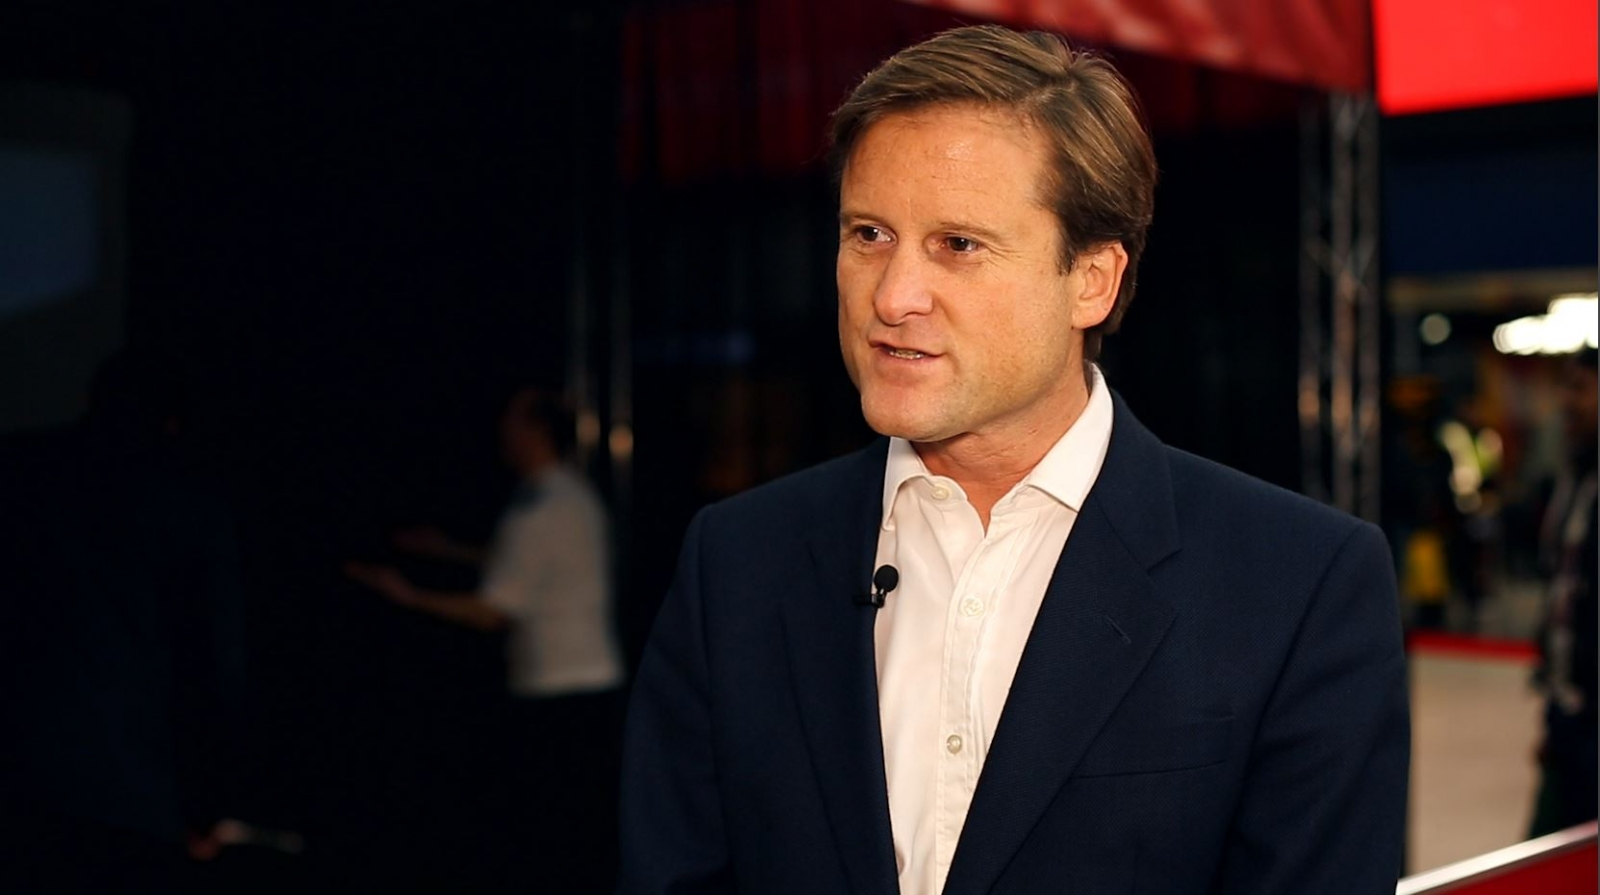 Chris Hill CFO at IG Group speaks to IBTimes TV